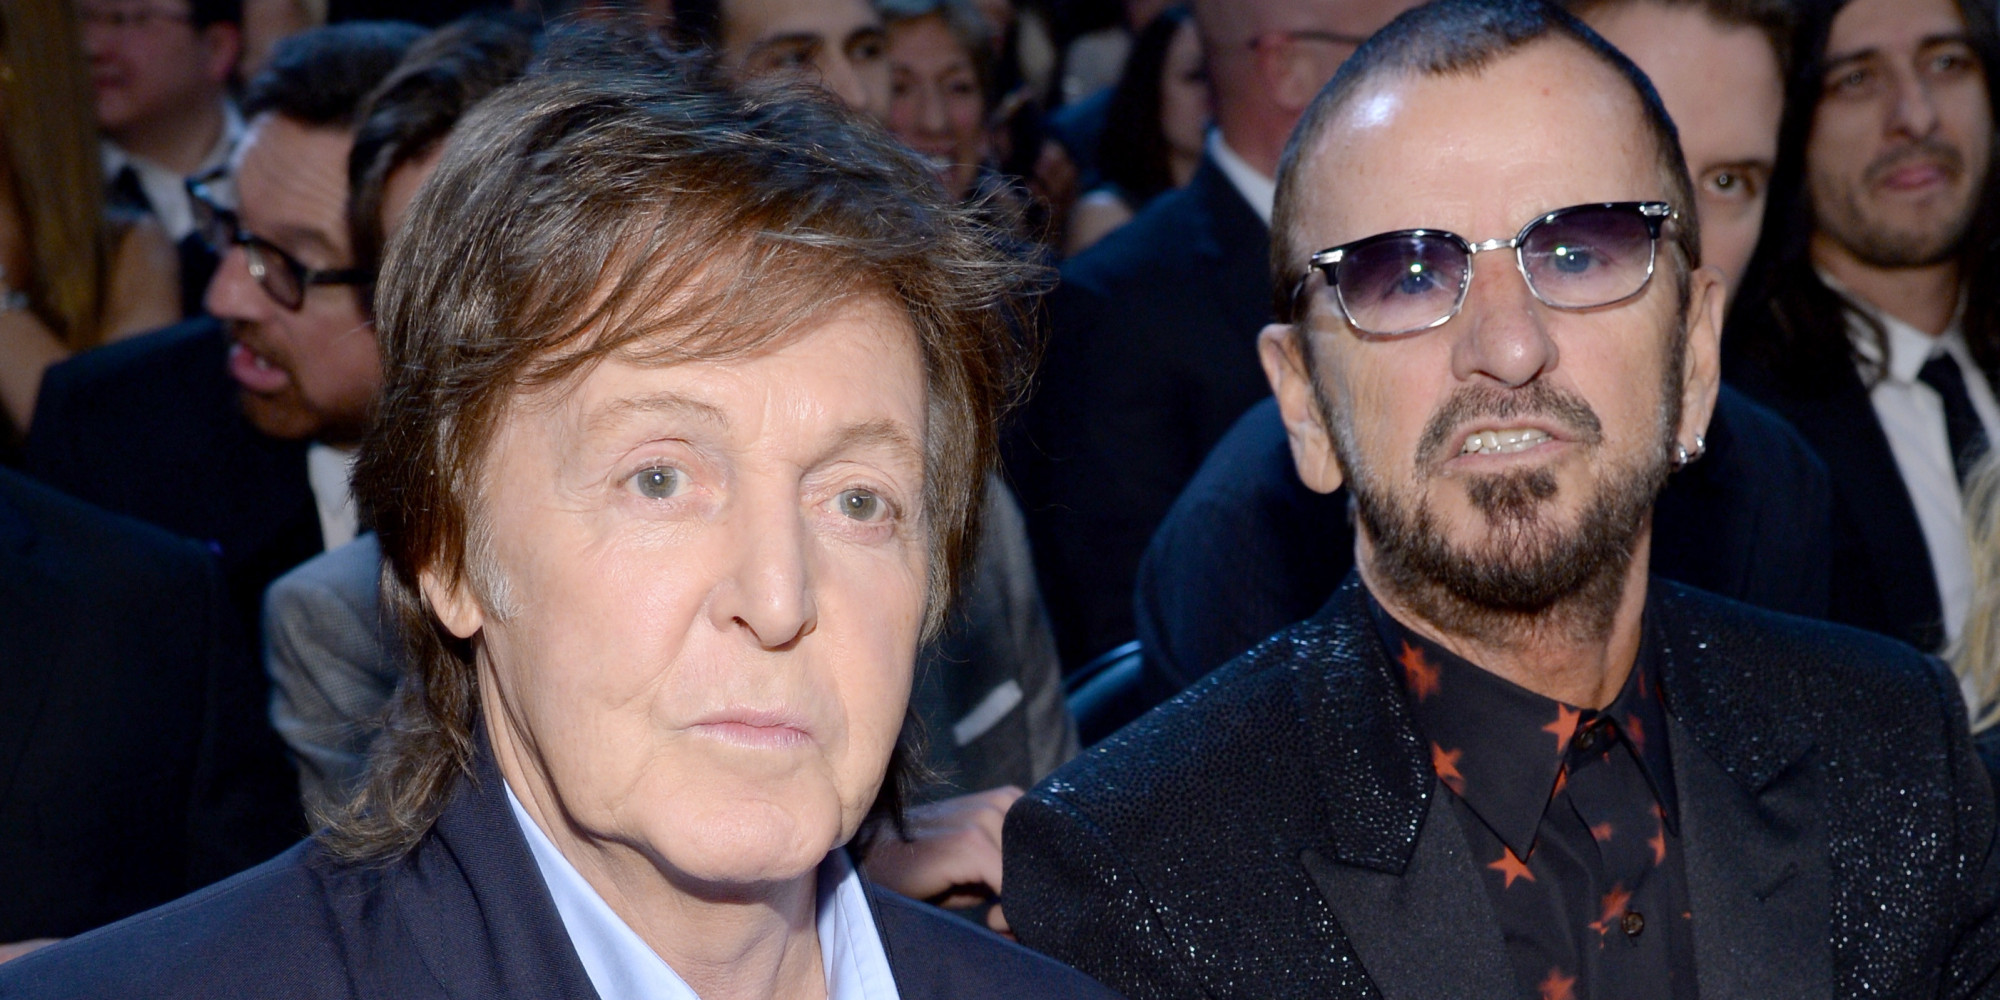 Paul McCartney Ringo Starr Grammys Performances Beatles Reunite For Queenie Eye